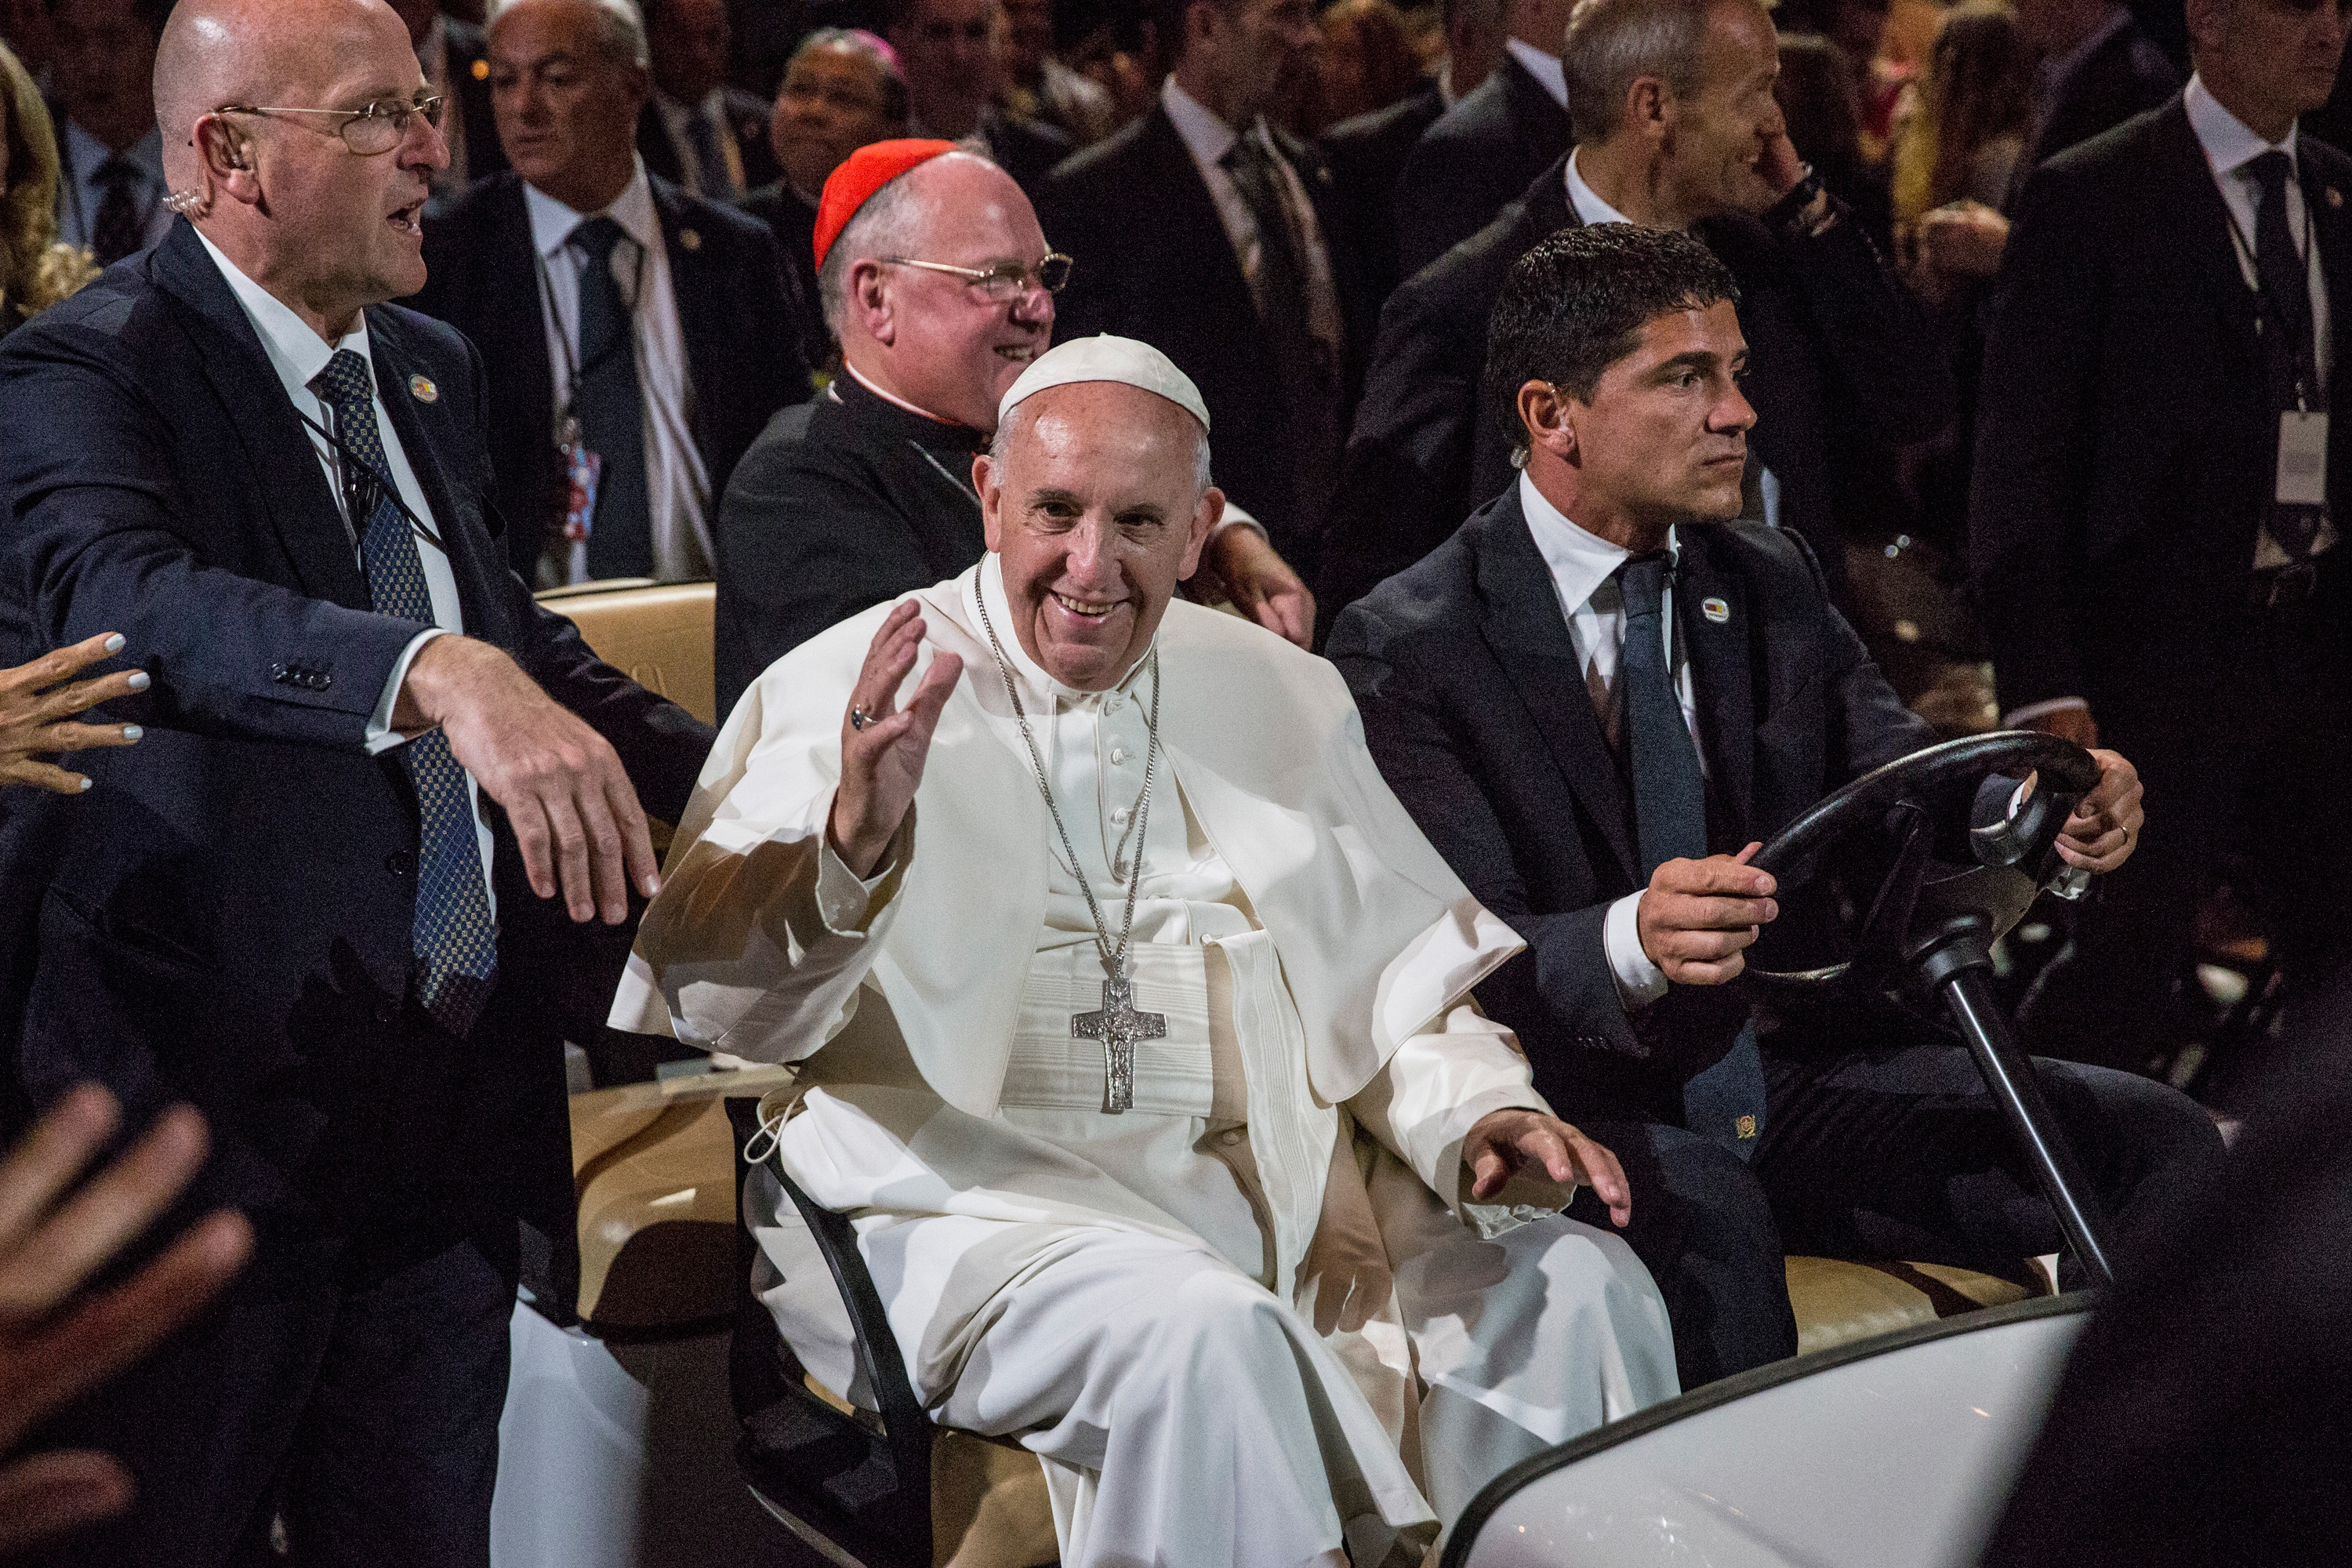 Pope Francis arrives to celebrate Mass at Madison Square Garden on September 25, 2015 in New York City. (Photo by Andrew Burton/Getty Images)